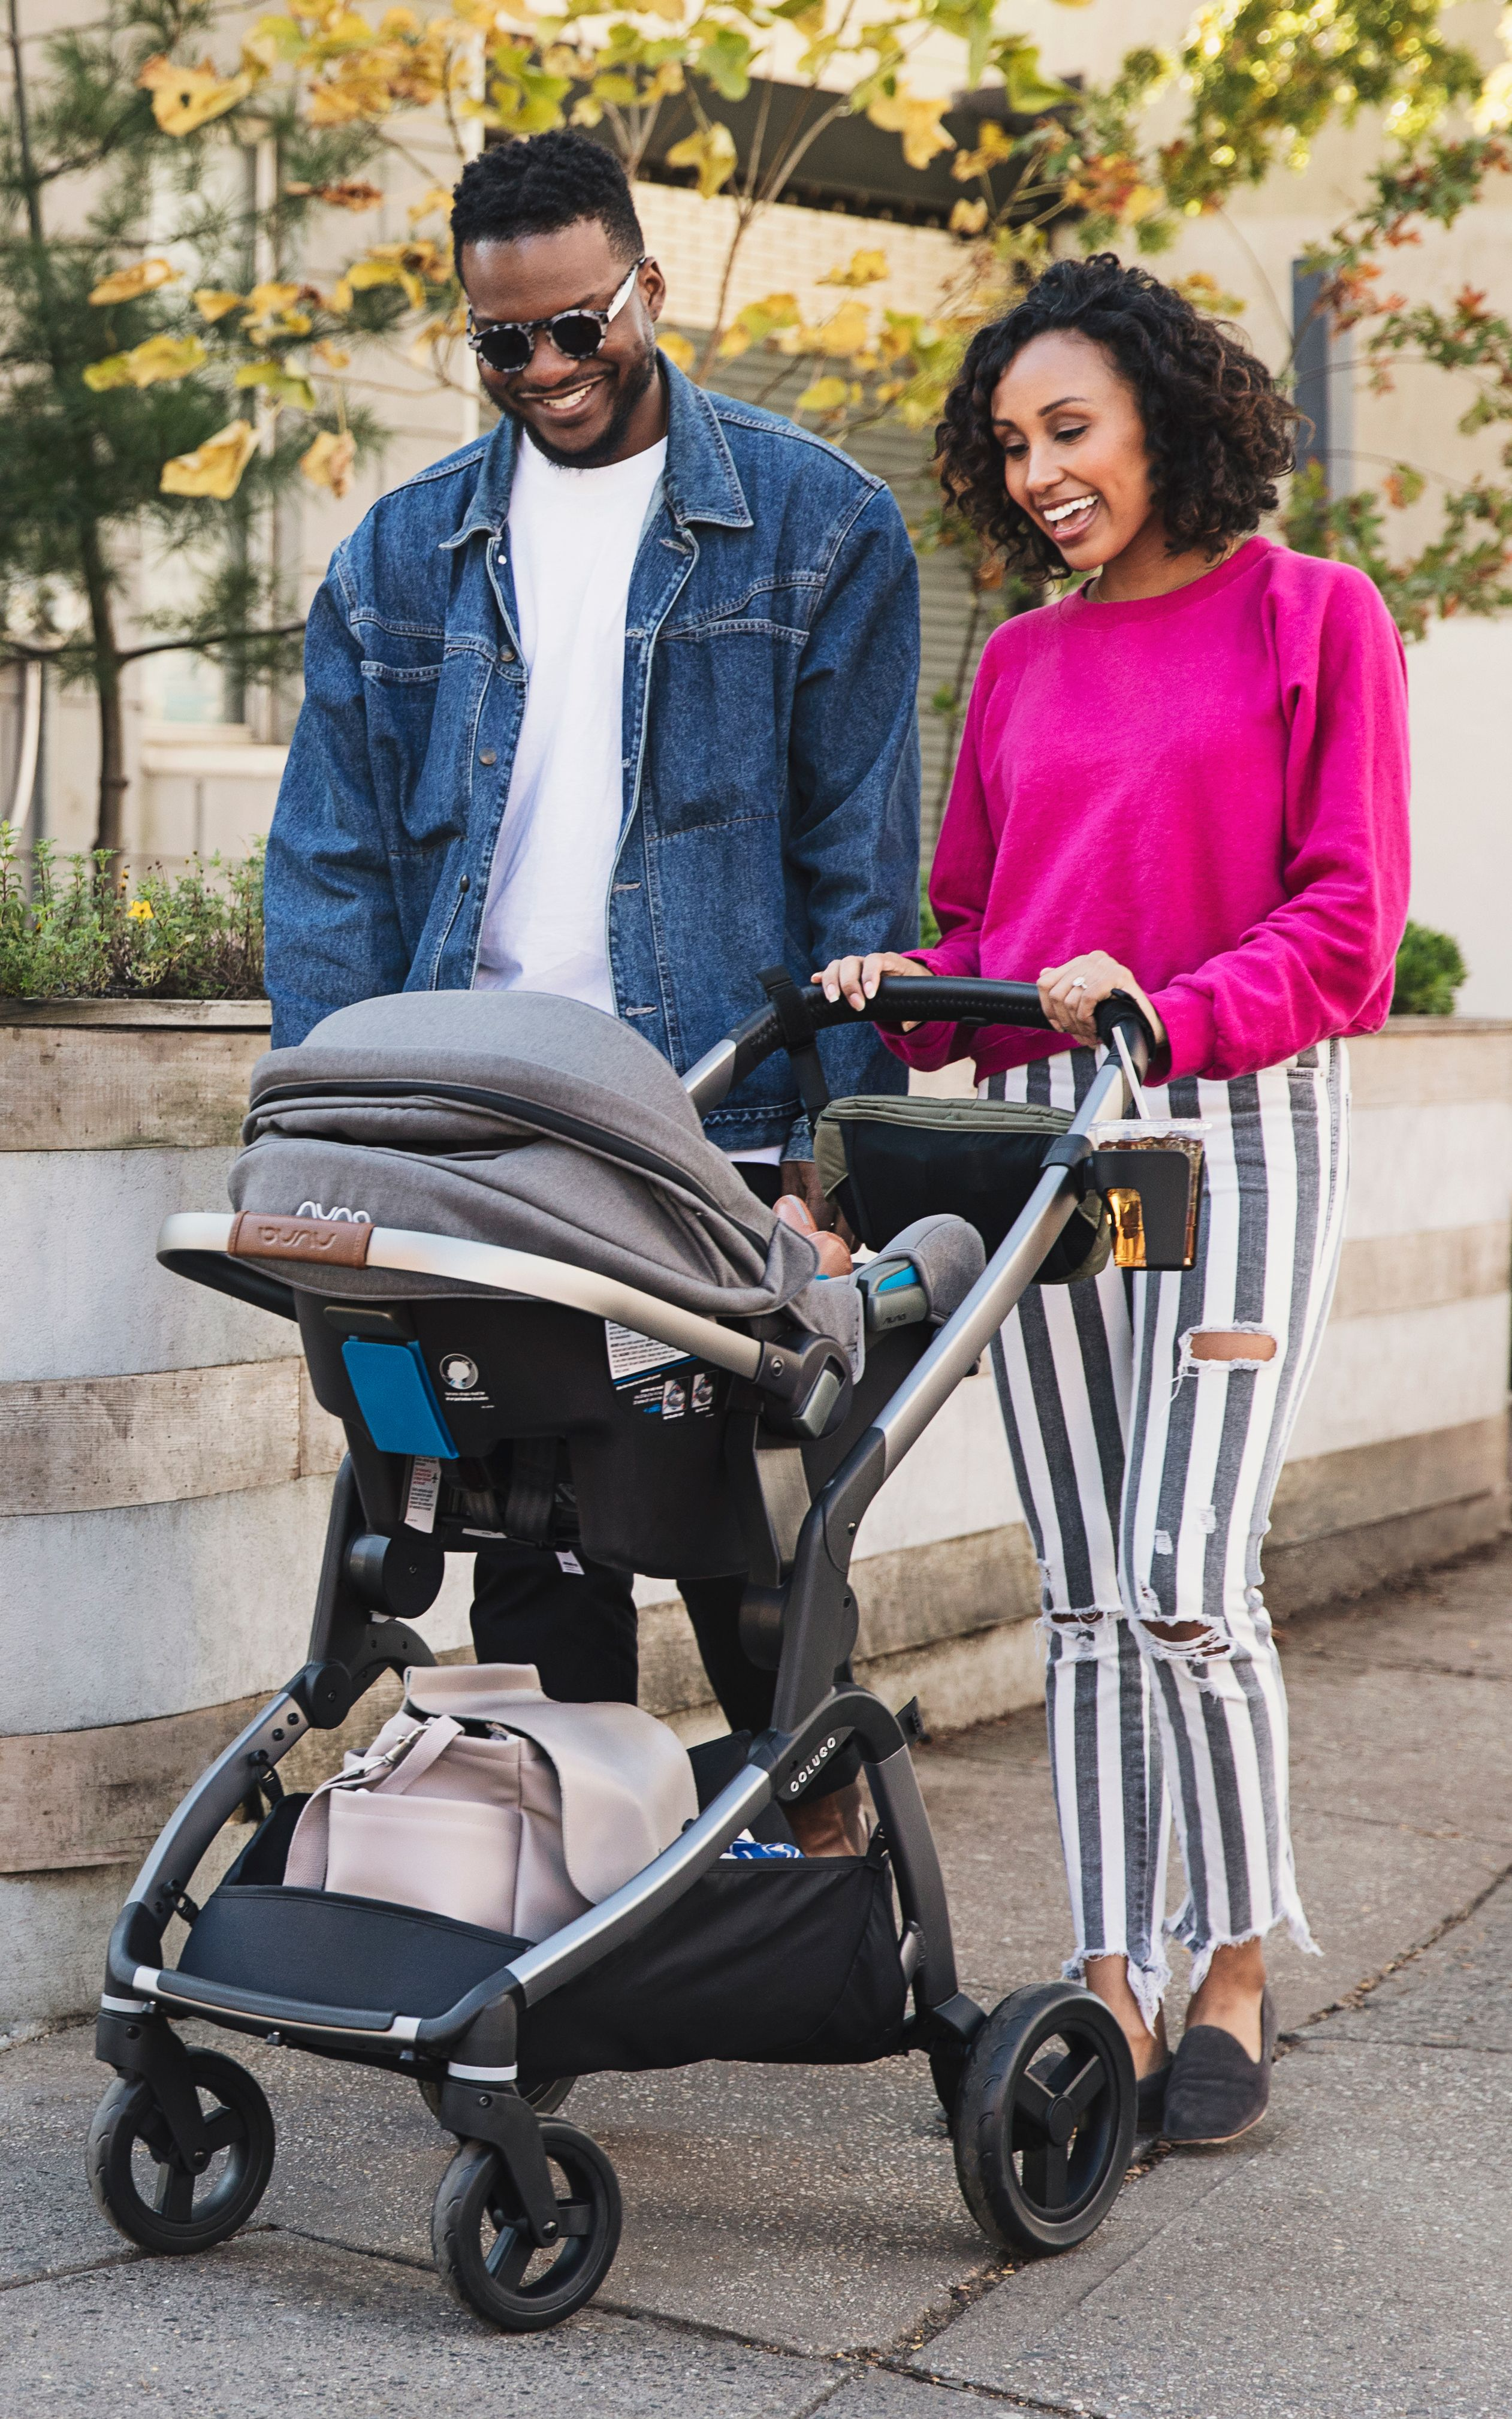 The Complete Stroller Deep Blue (With images) Toddler